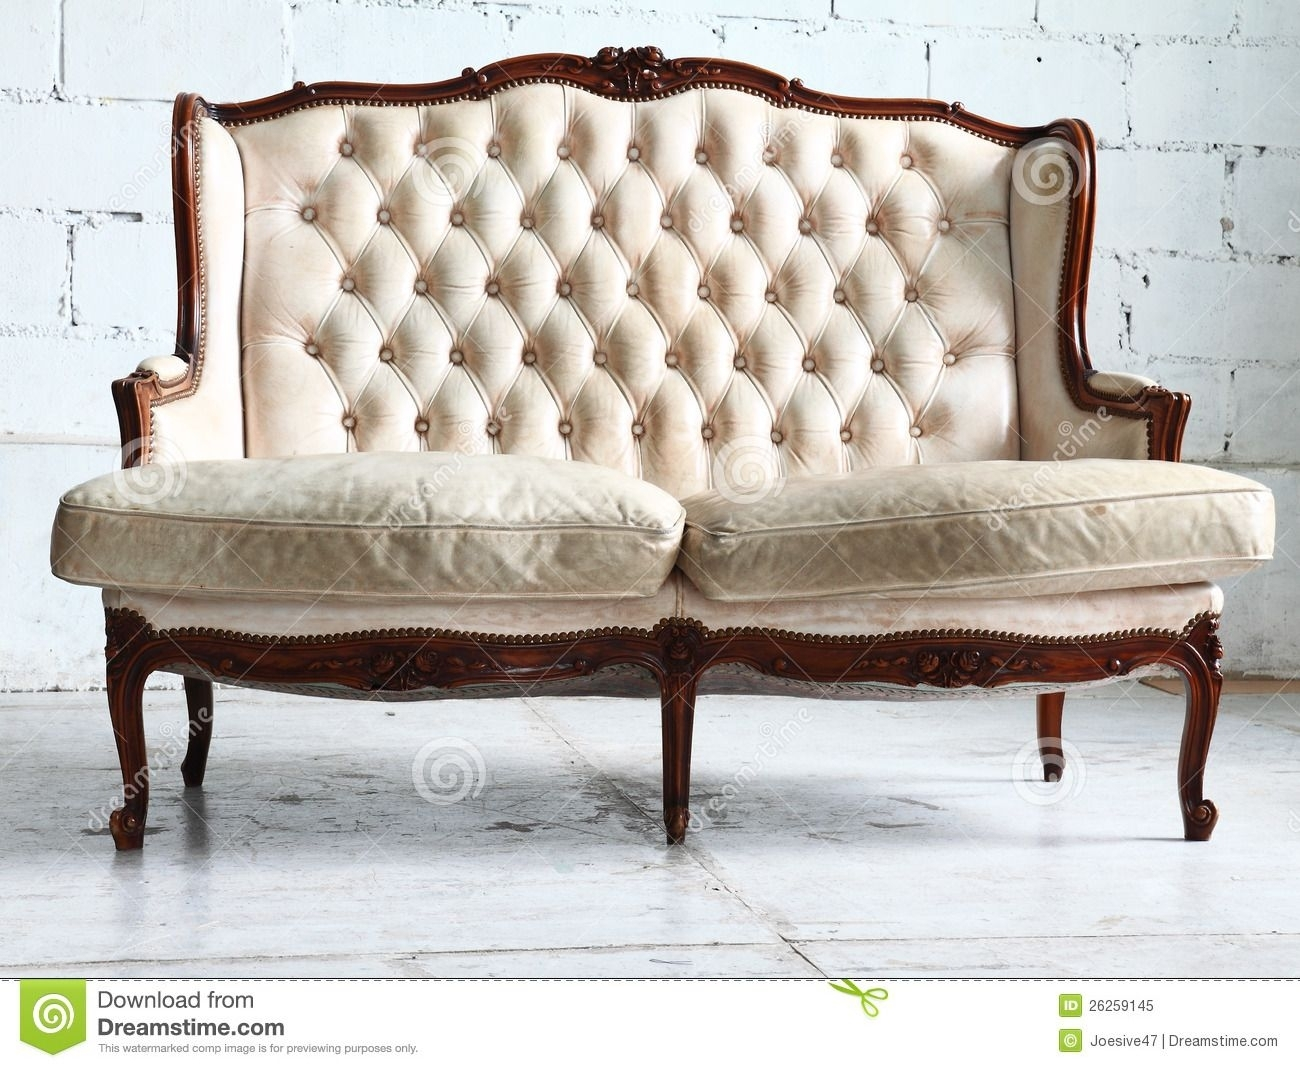 Vintage Sofa In The Room Royalty Free Stock Photo – Image: 26259145 With Regard To Vintage Sofas (Image 8 of 10)